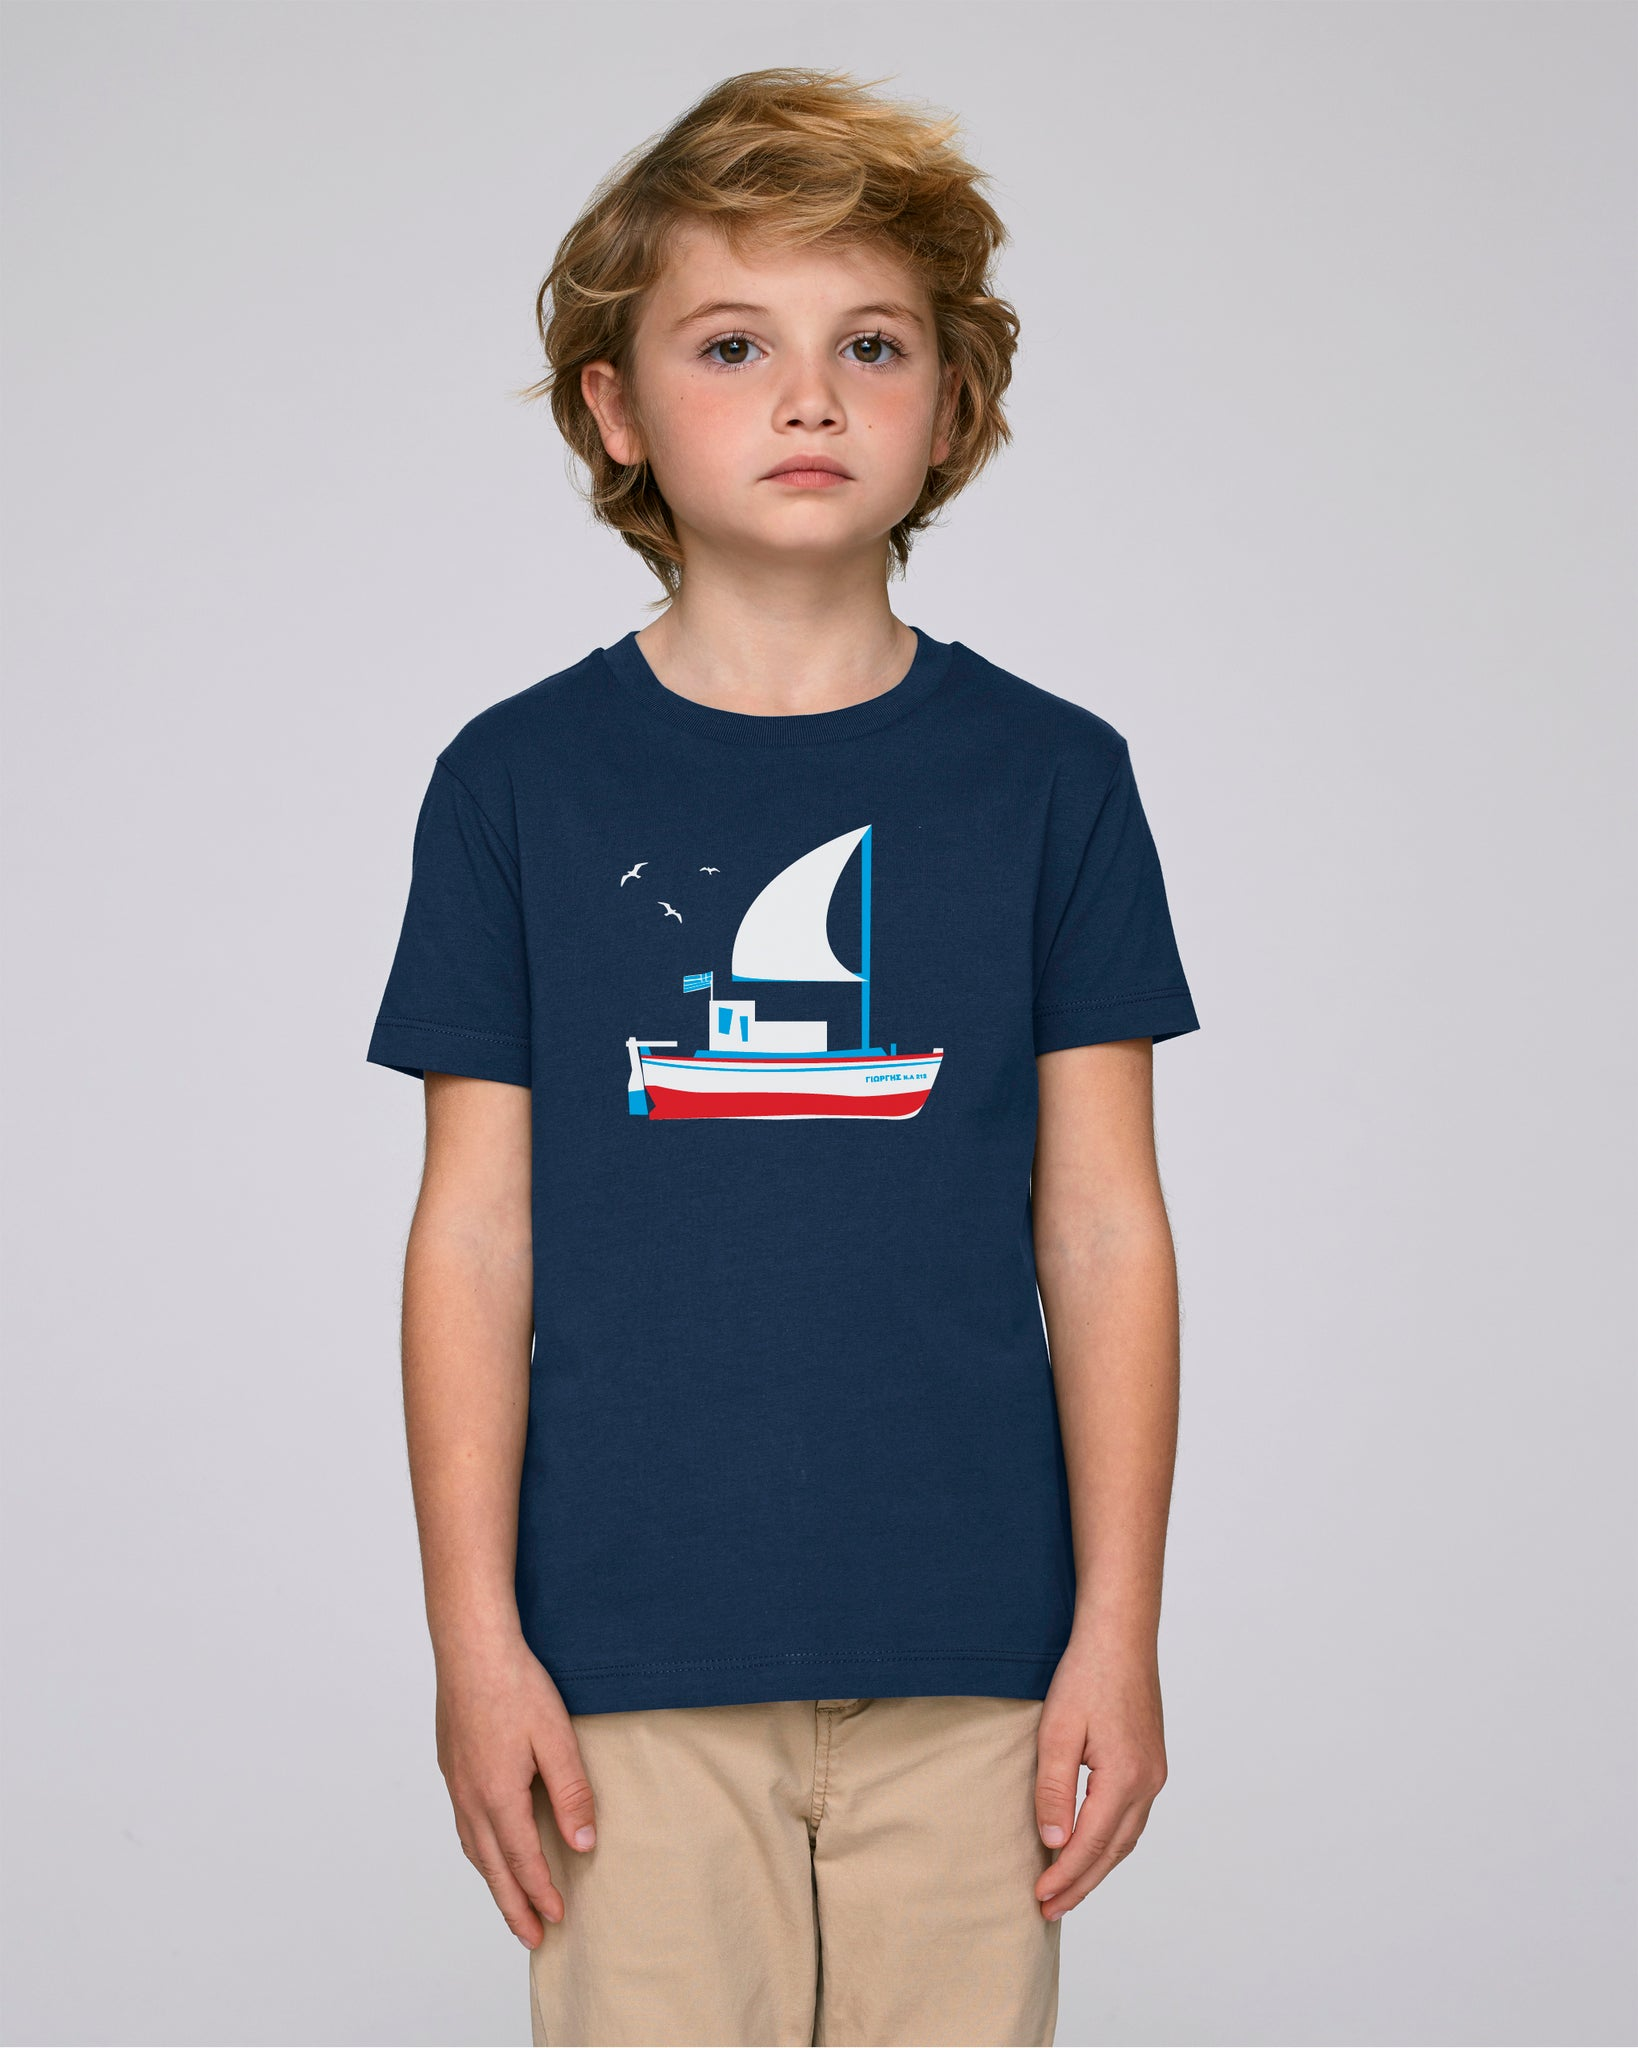 To kaiki (boat) kids tshirt